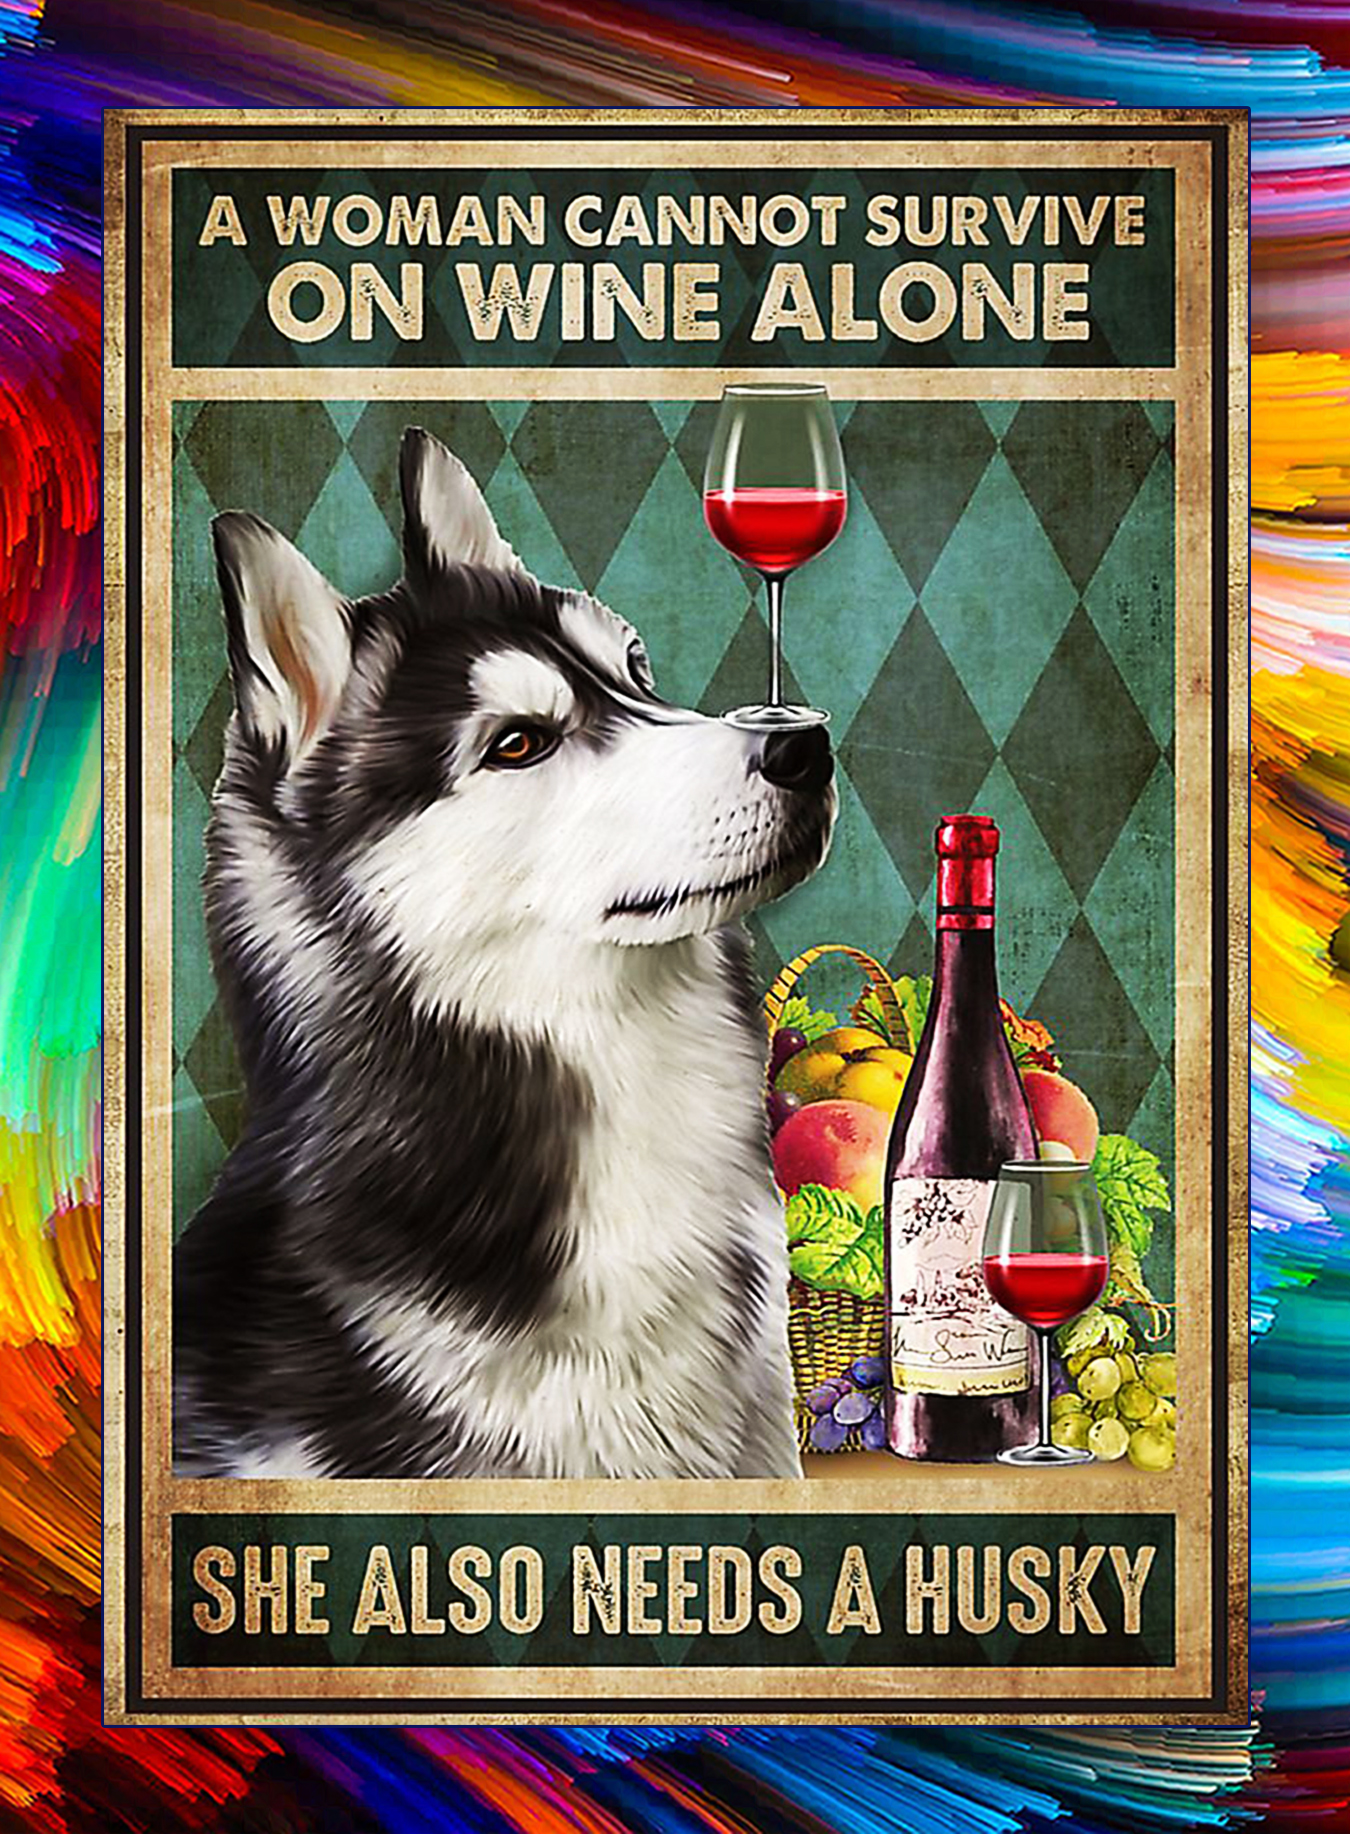 A woman cannot survive on wine alone she also needs a husky poster - A3